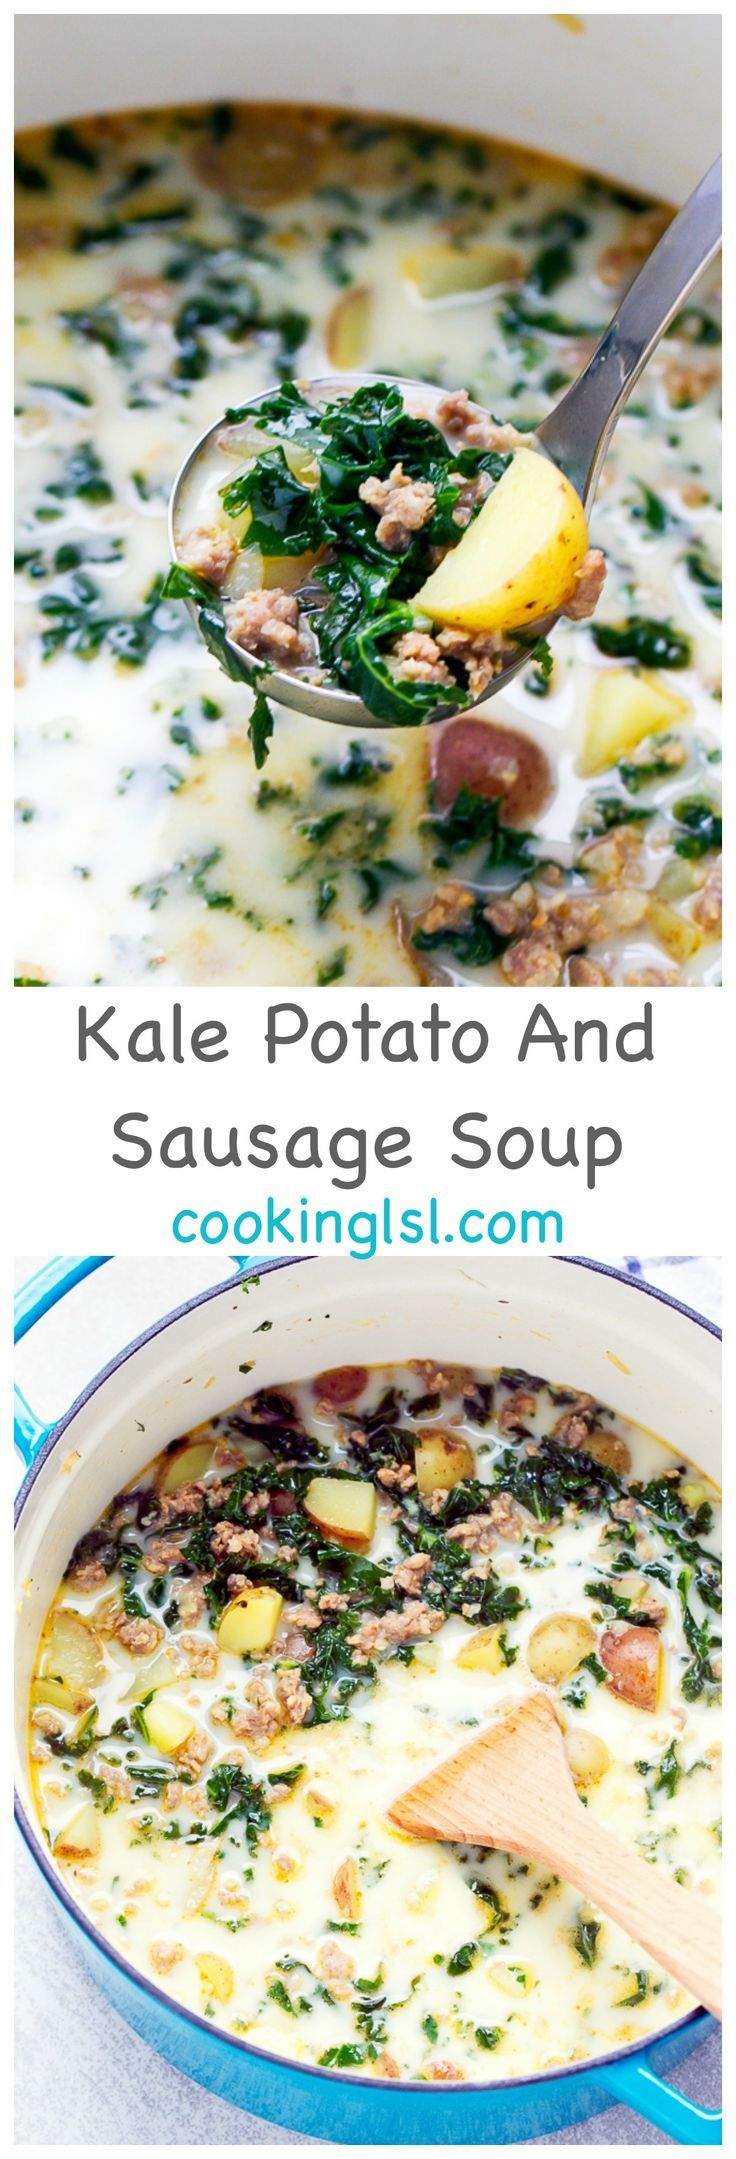 Easy-Kale-Potato-And-Sausage-Soup-Recipe via @cookinglsl